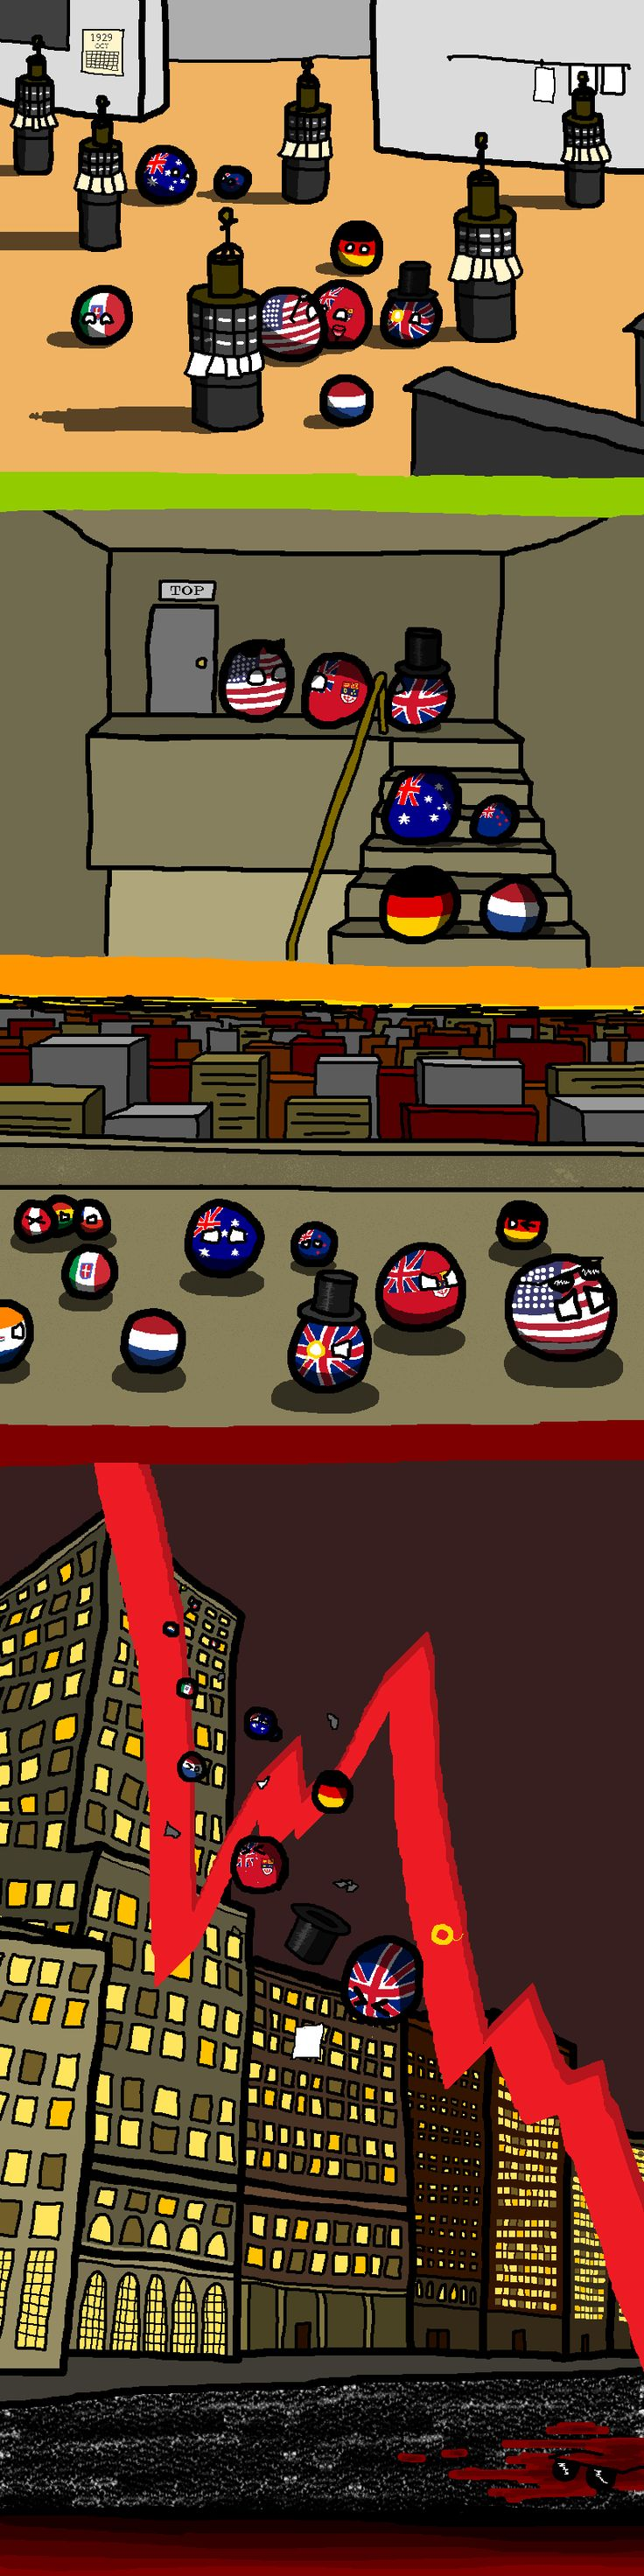 Polandball - the Great Depression